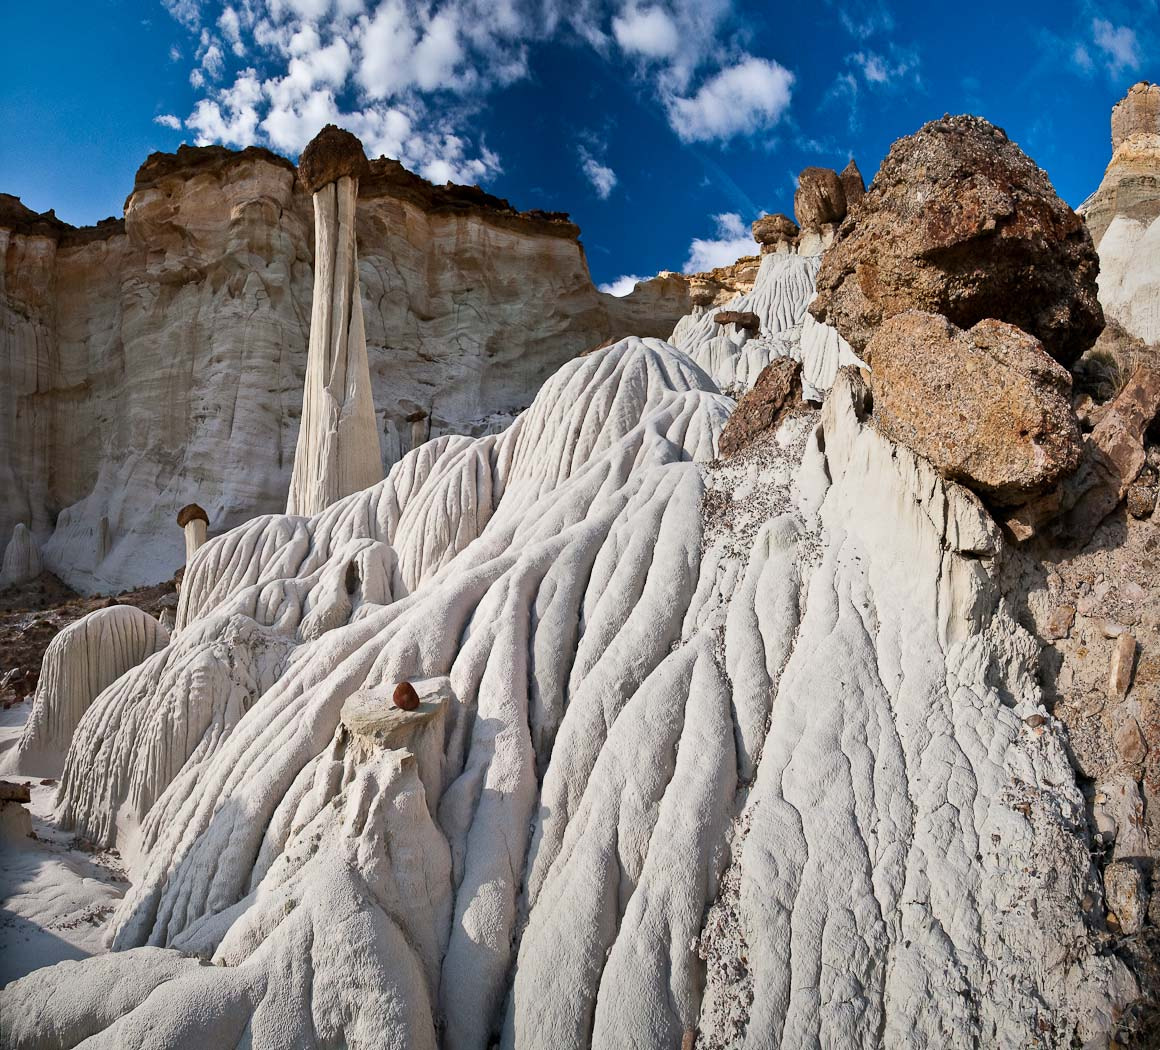 Photograph Hoodoo by Kirill Krylov on 500px